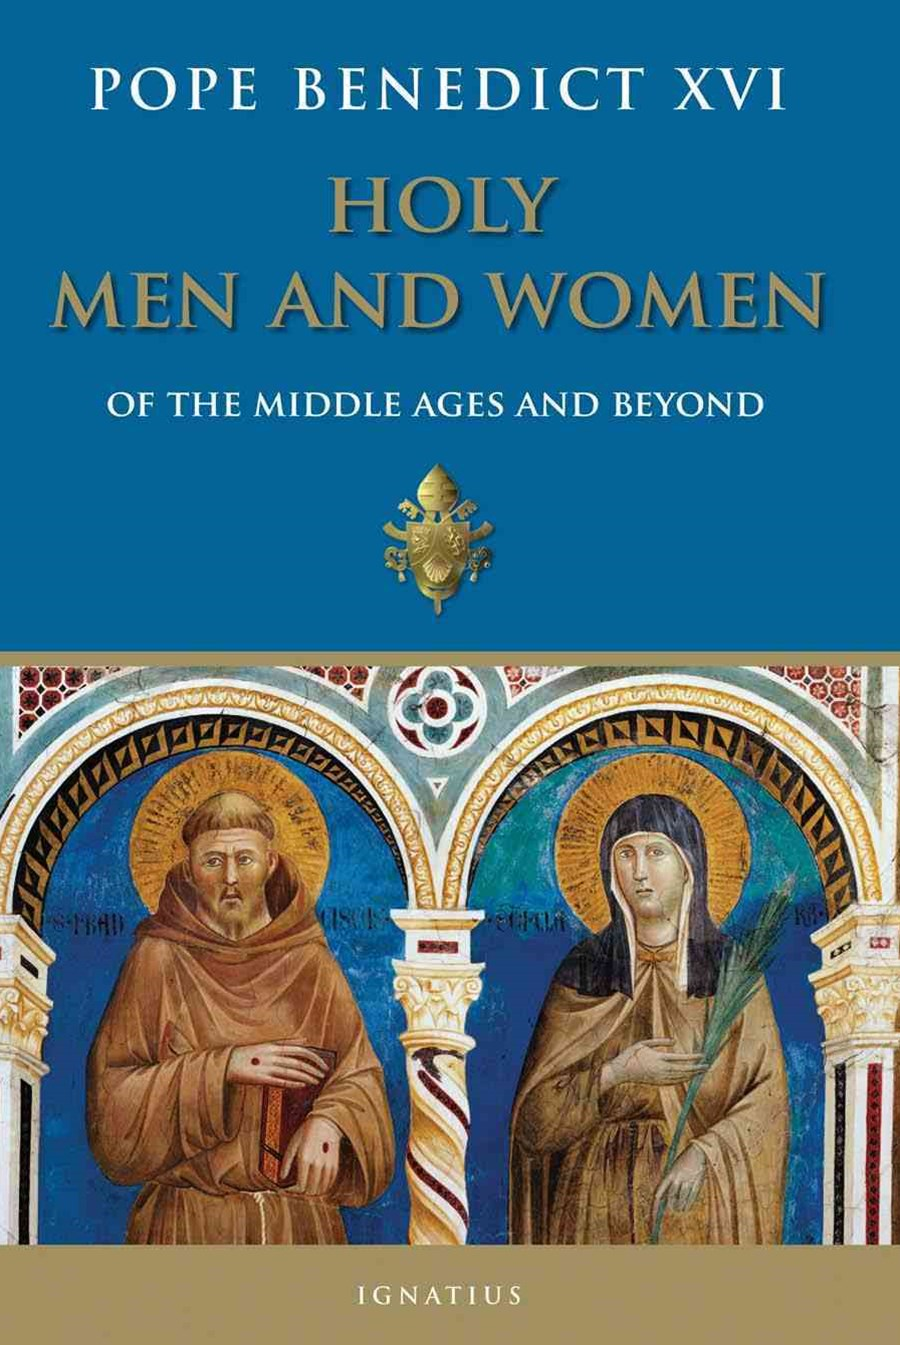 Holy Men and Women from the Middle Ages and Beyond